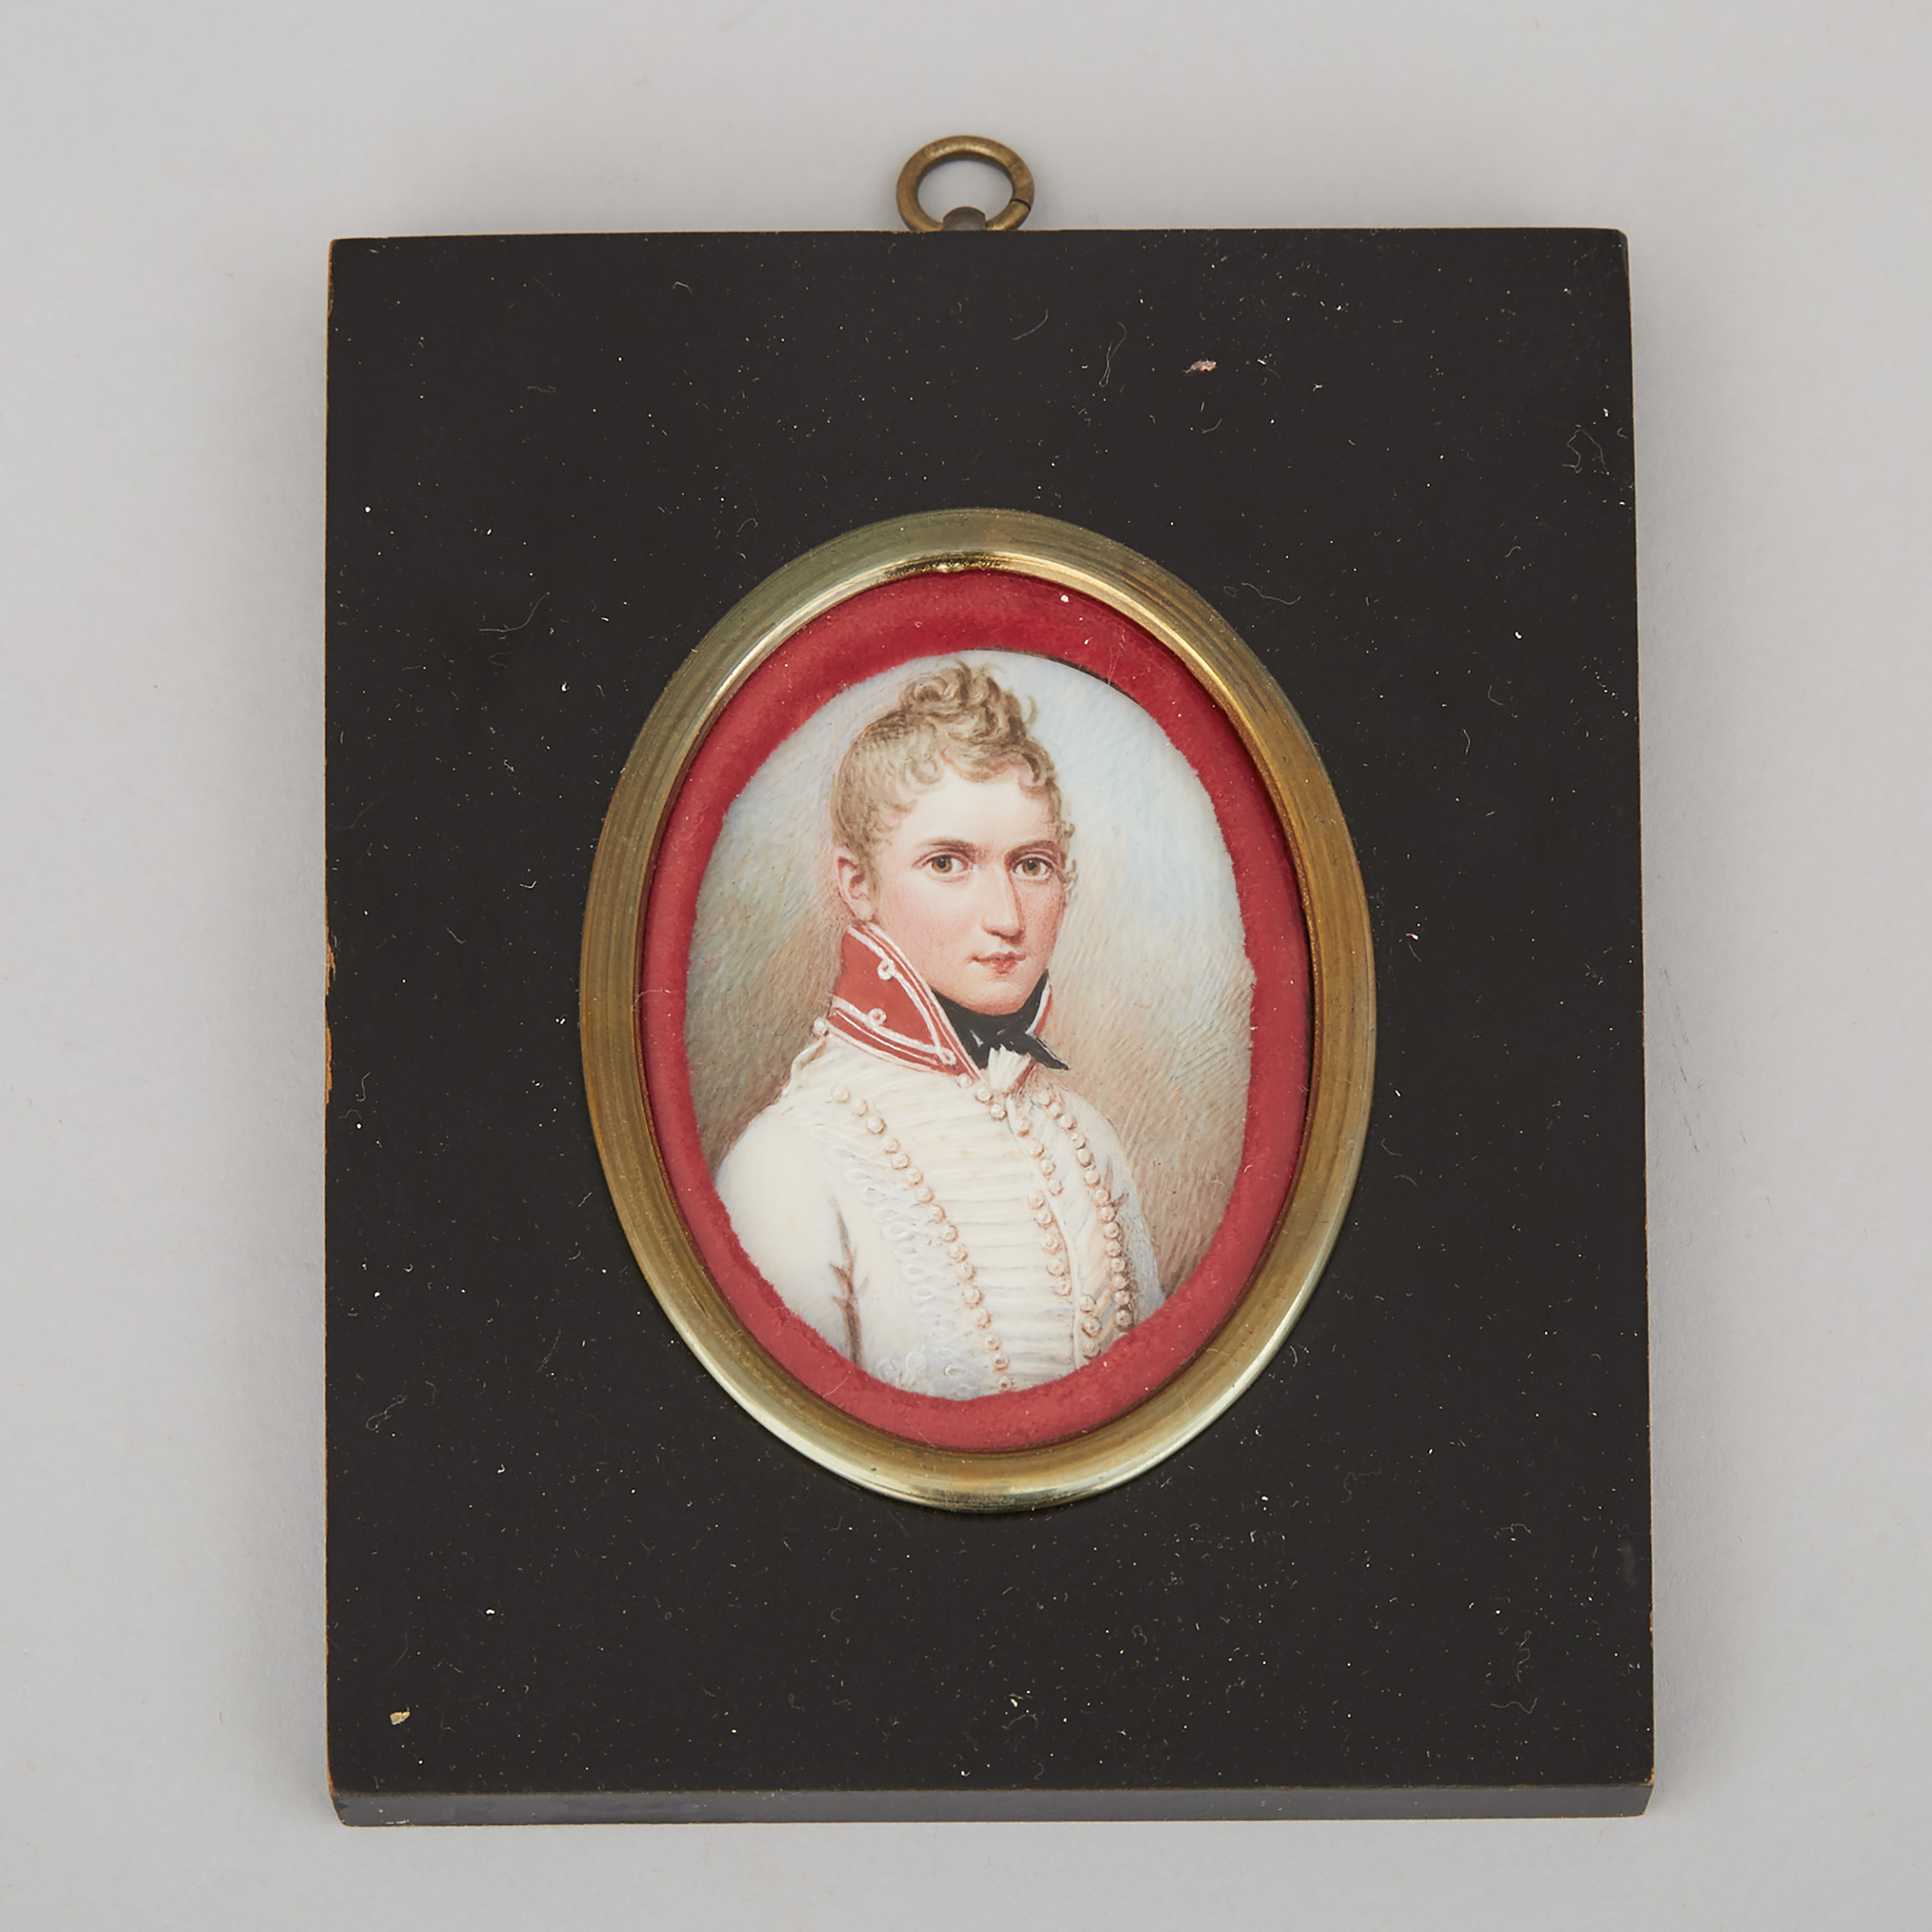 Austrian School Portrait Miniature of a Napoleonic Era Officer, early 19th century